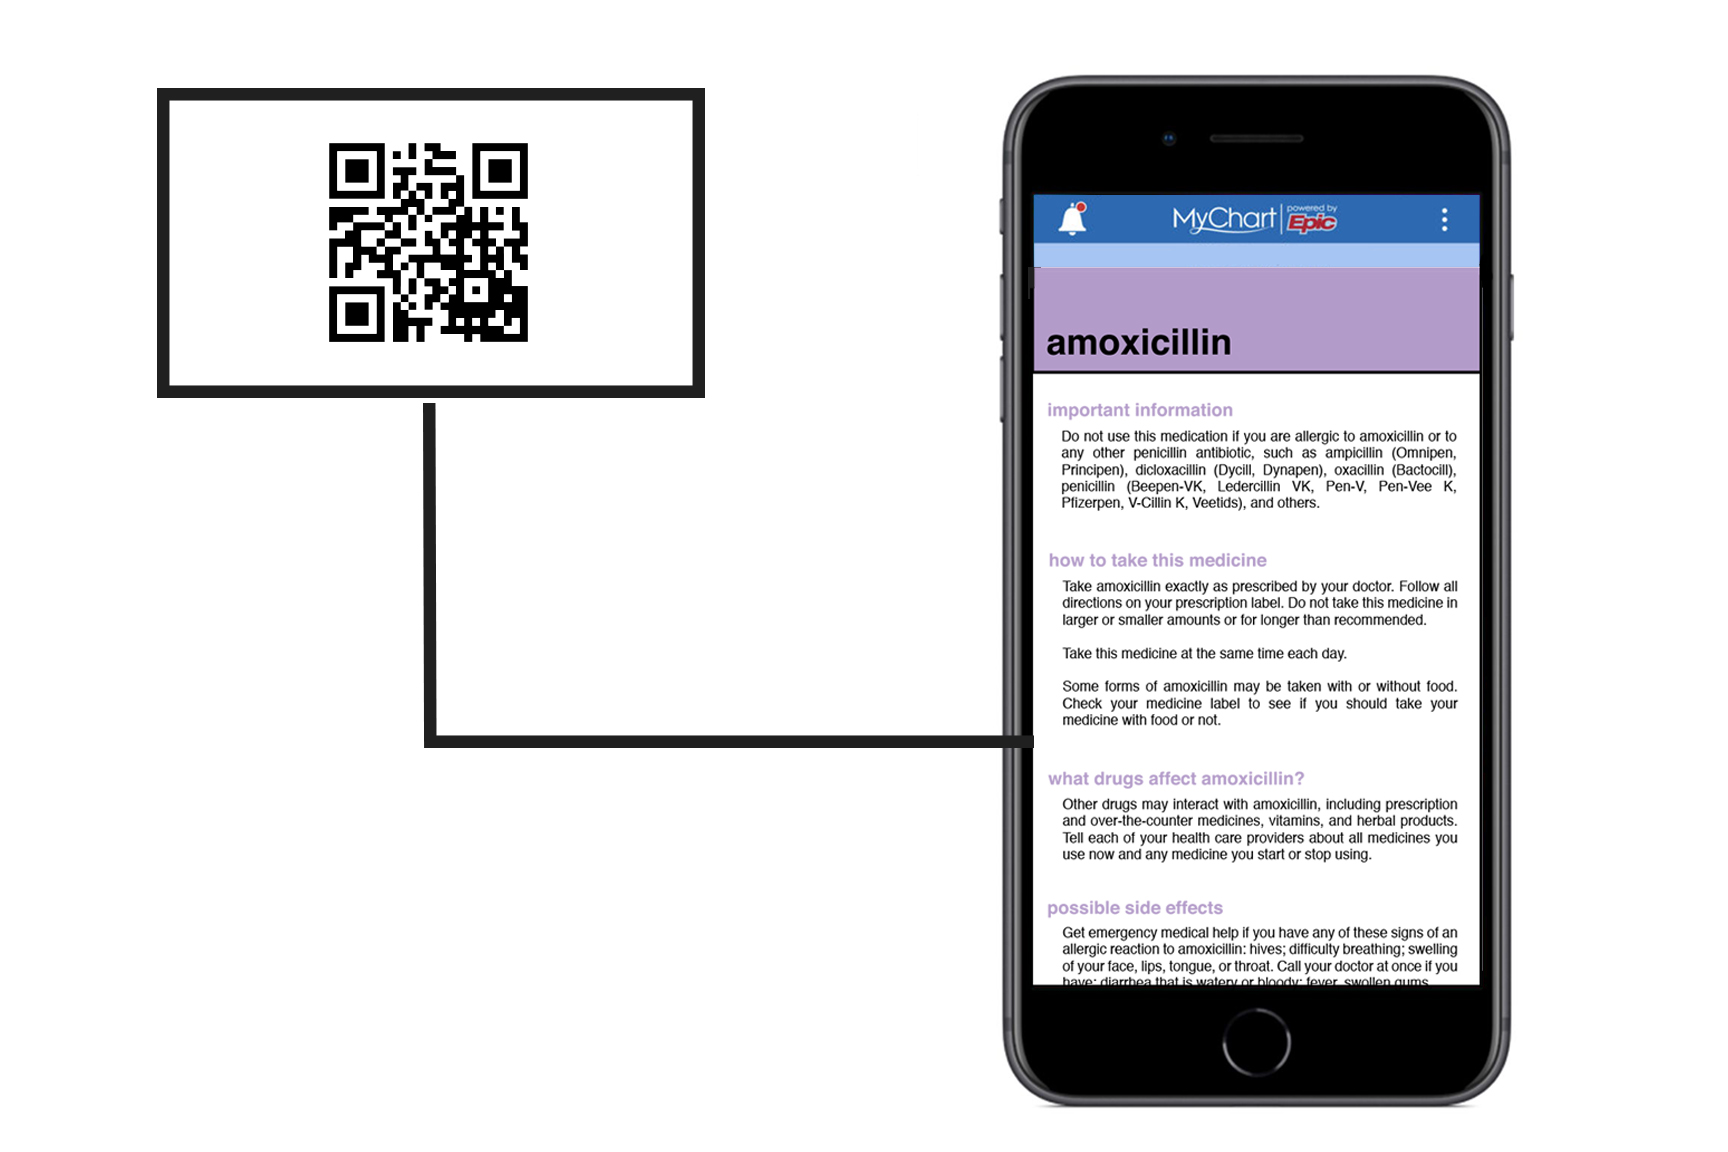 QR CODE SCANS DIRECTLY TO MORE INFORMATION IN MD ANDERSON APP